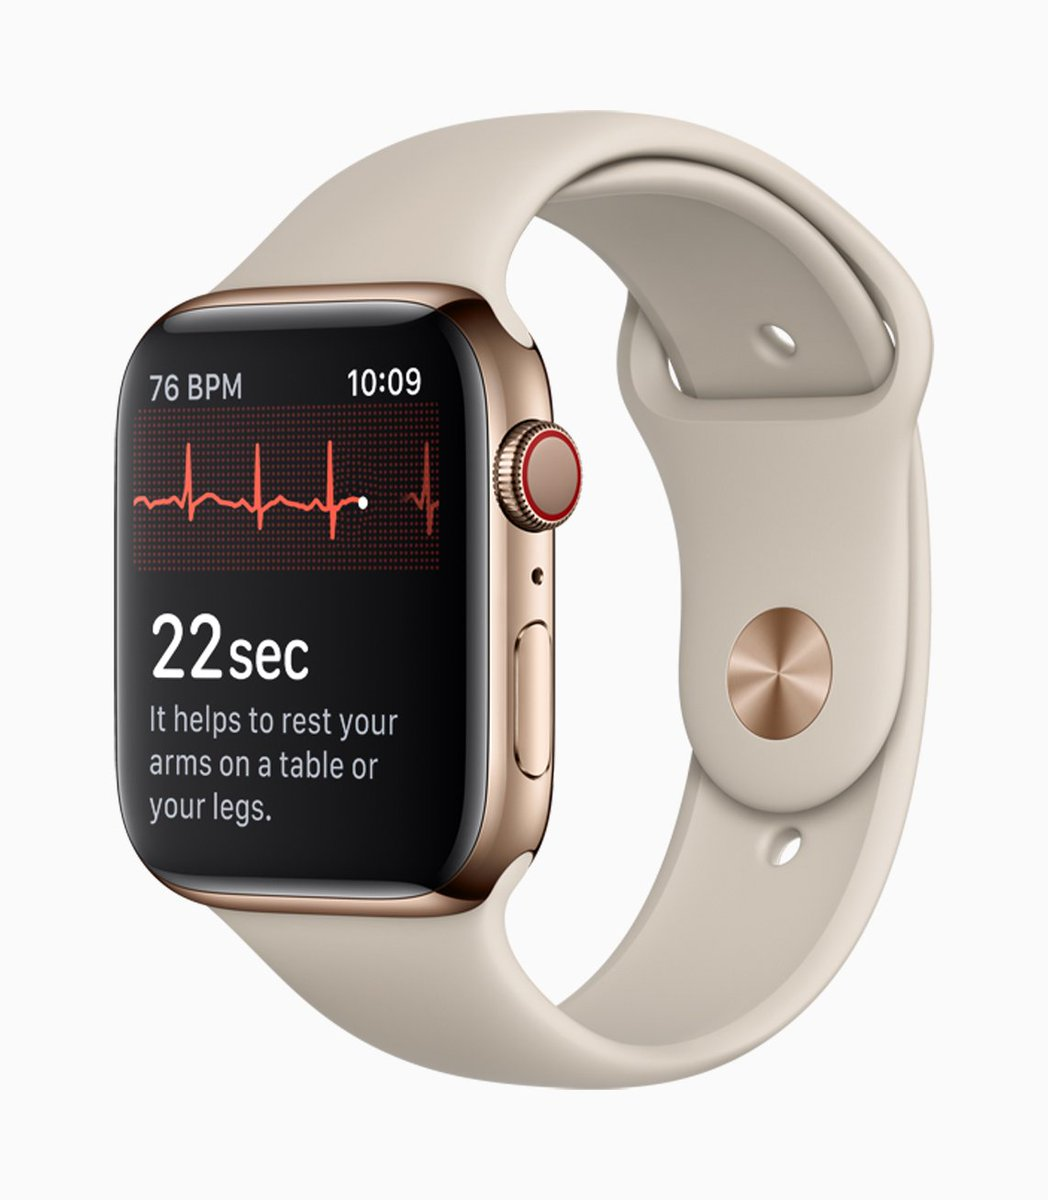 Apple has confirmed That watchOS 5.1.2 - which will enable the ECG capabilities of the Apple Watch Series 4 - will be released to the public today. #applenews  https://t.co/1pU6NbOe7Y